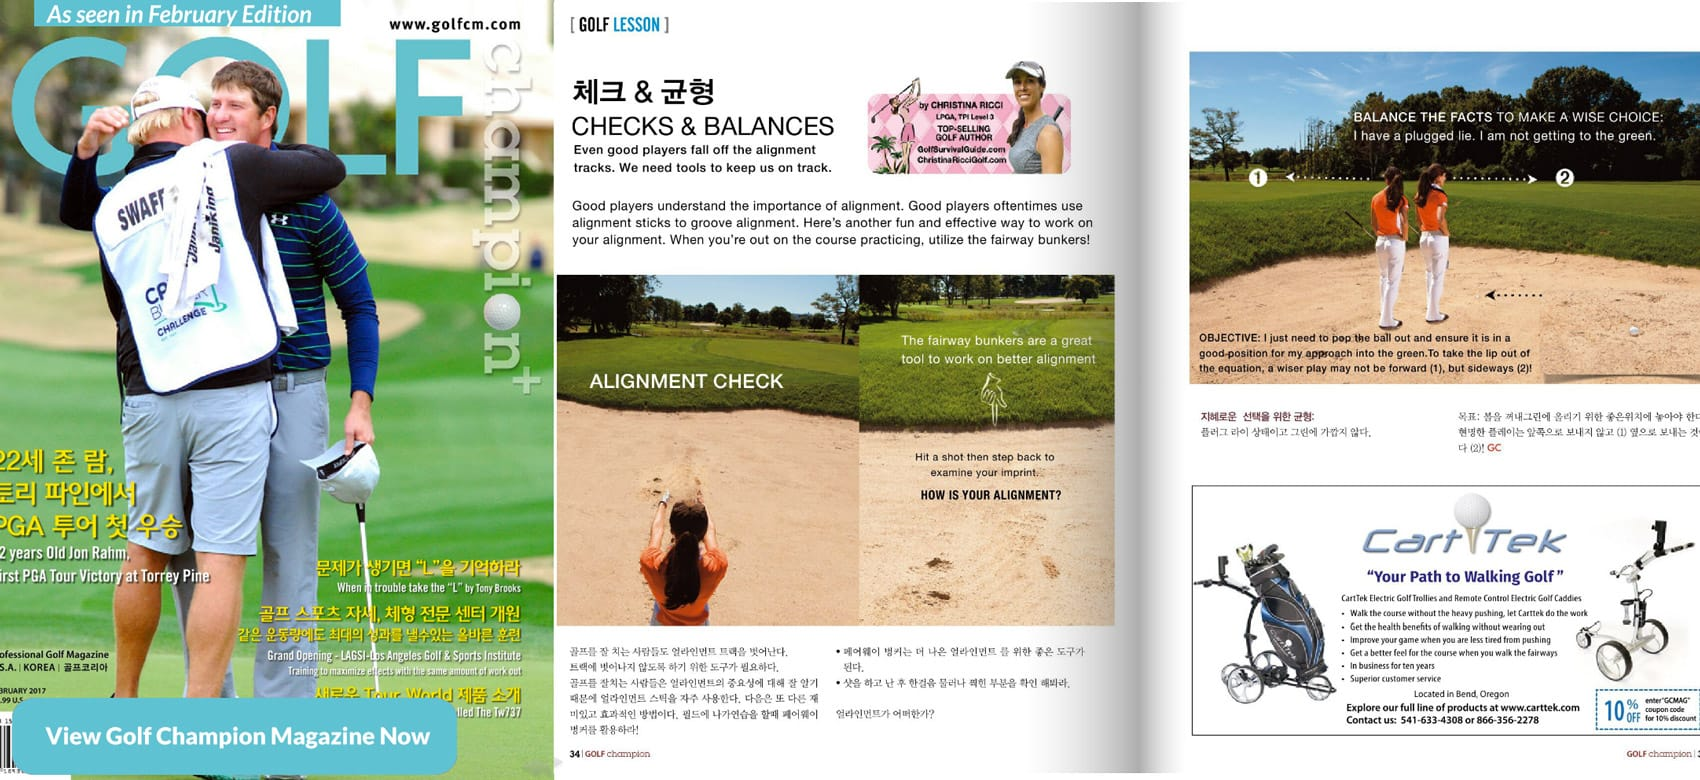 ChampionGolf-FebEdition-Bunker-Checks